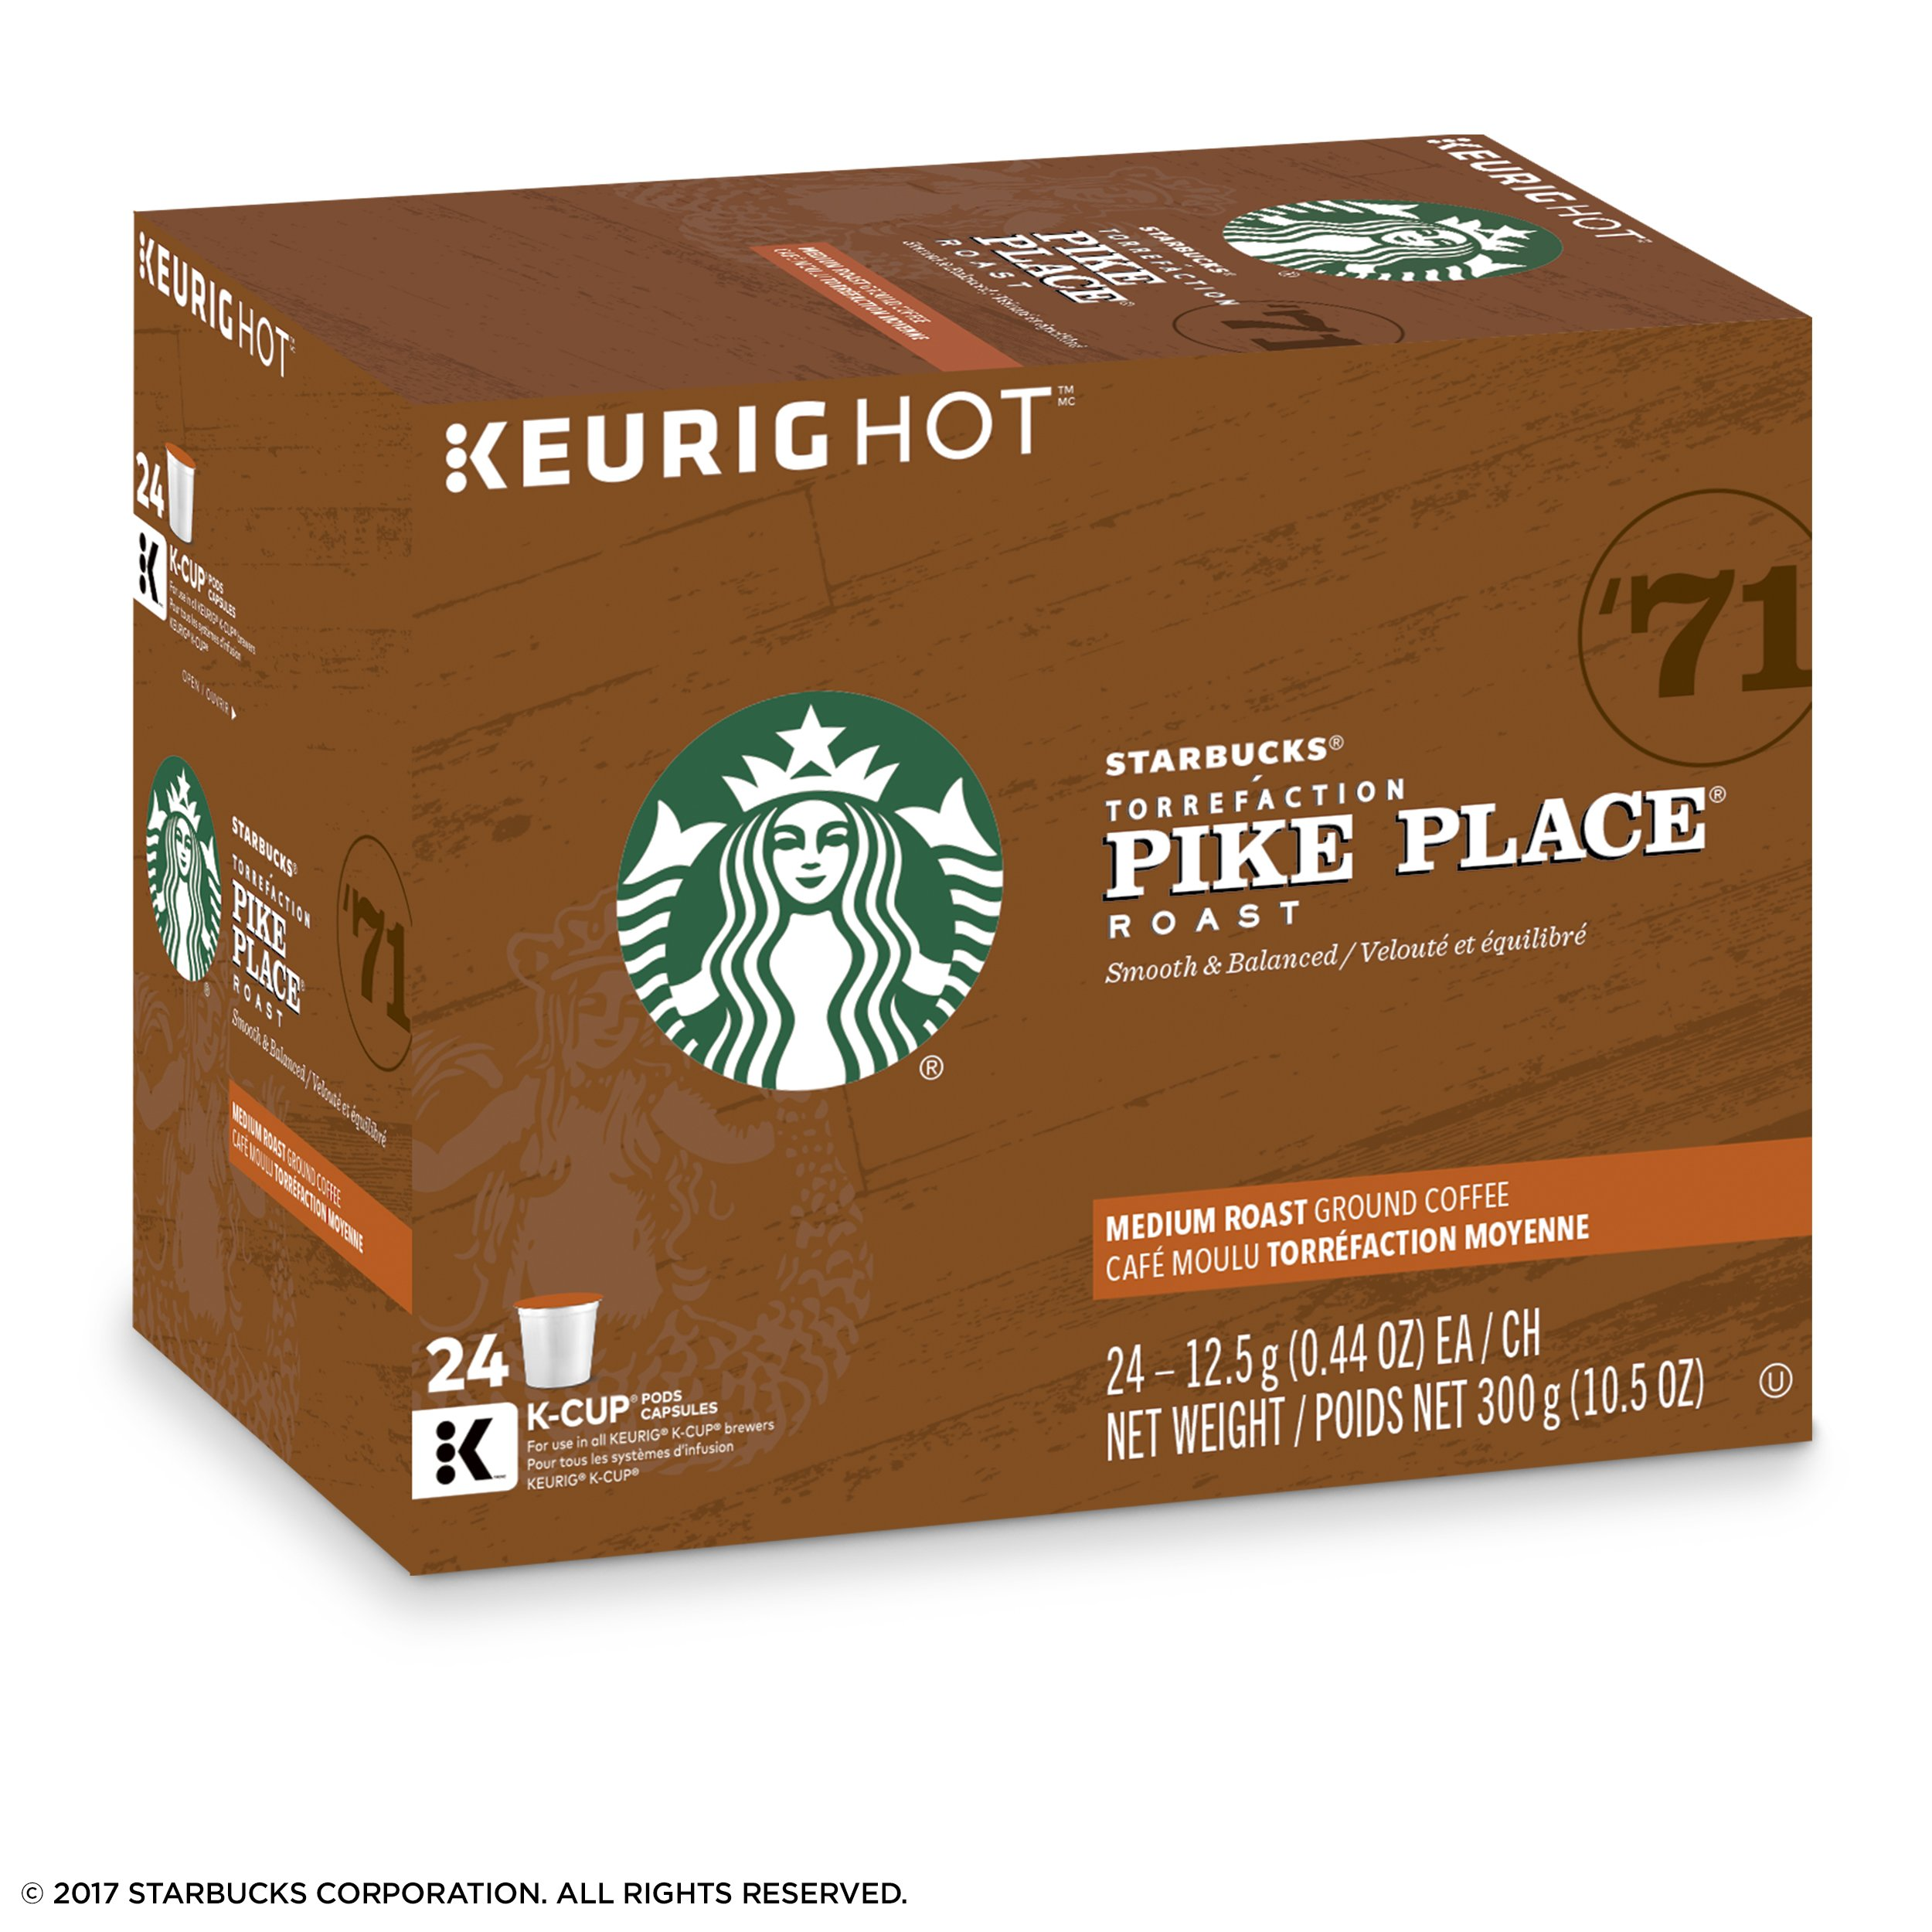 Starbucks Pike Place Roast Medium Roast Single Cup Coffee for Keurig Brewers, 4 boxes of 24 (96 total K-Cup pods) by Starbucks (Image #5)